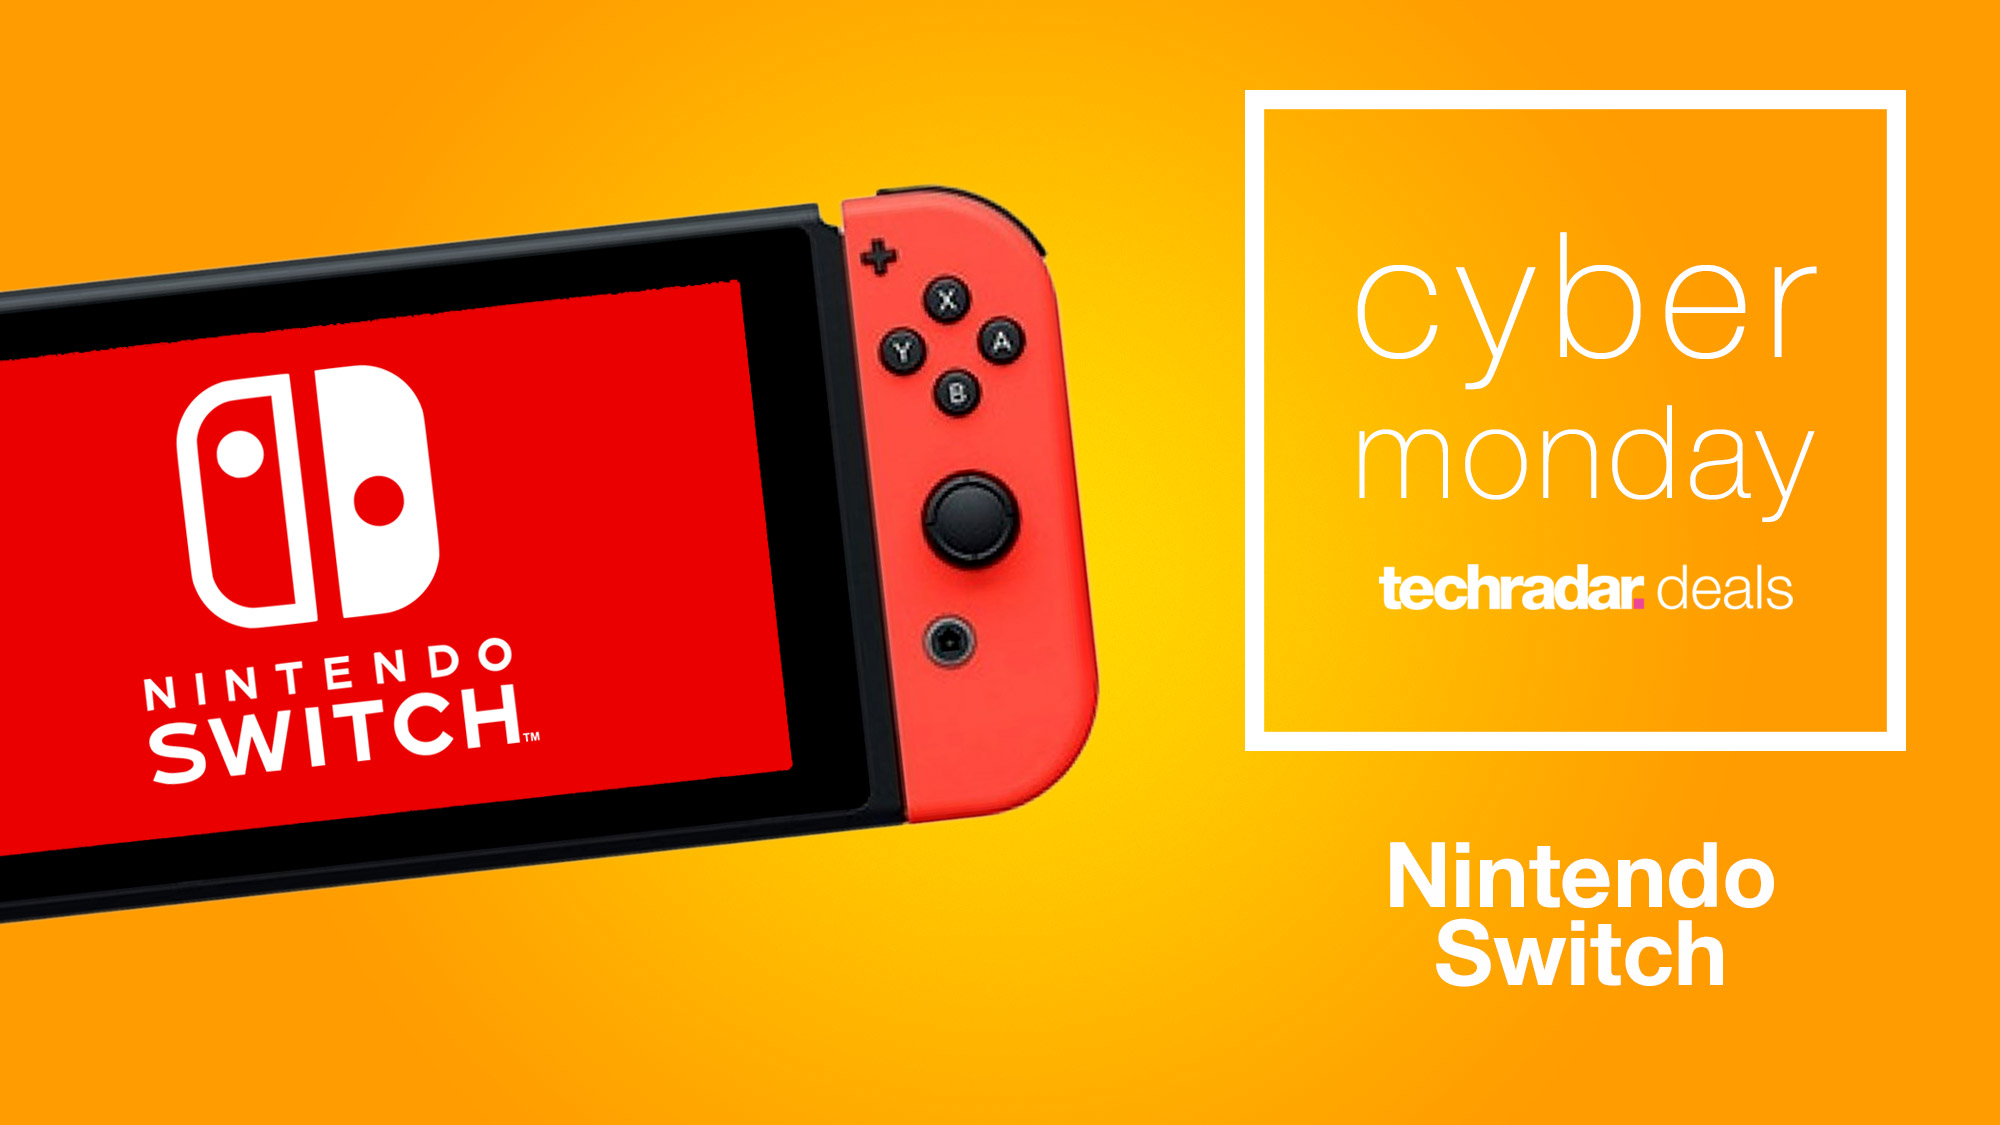 Nintendo Switch Cyber Monday Deals 2020 What To Expect Techradar